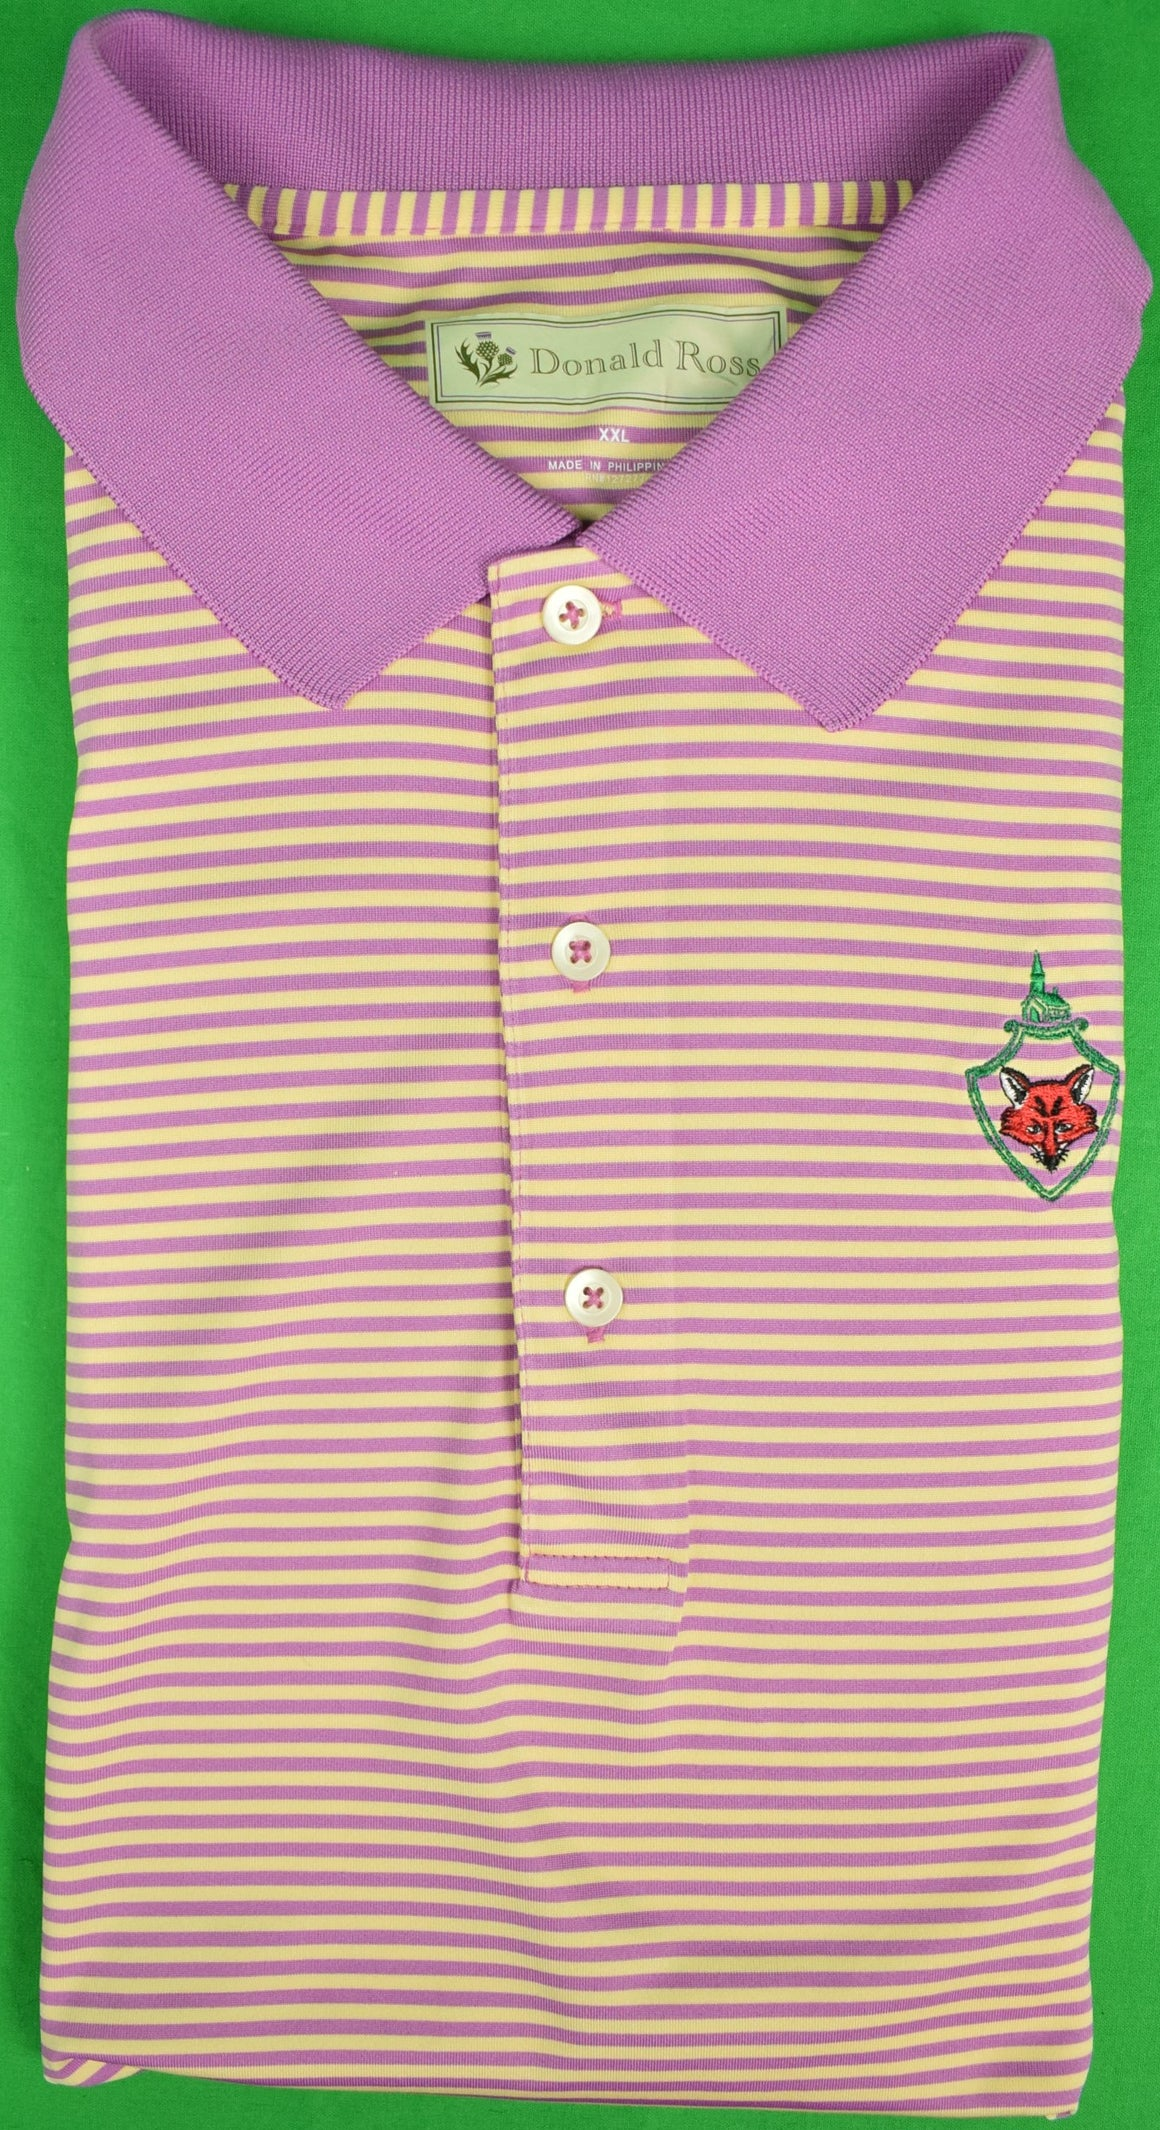 Donald Ross S/S Golf Shirt w/ Fox Chapel Golf Club Logo Sz: XXL